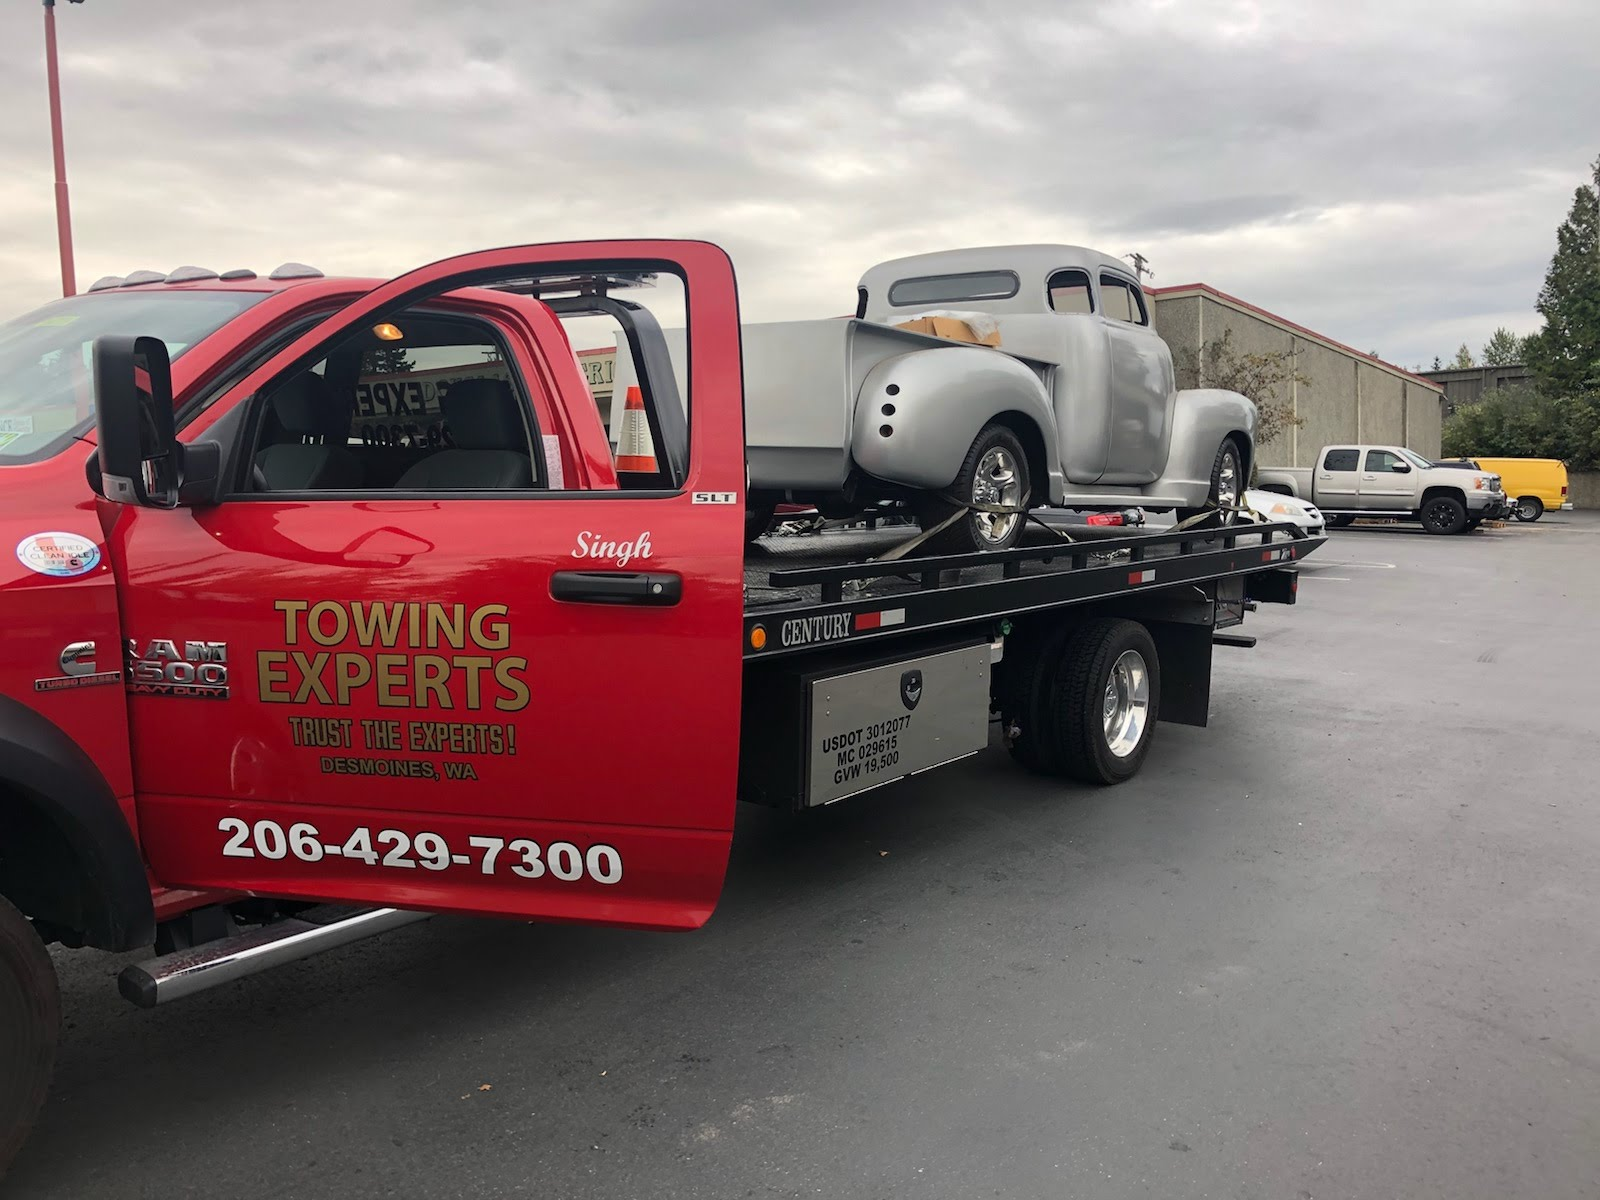 The Towing Experts image 1